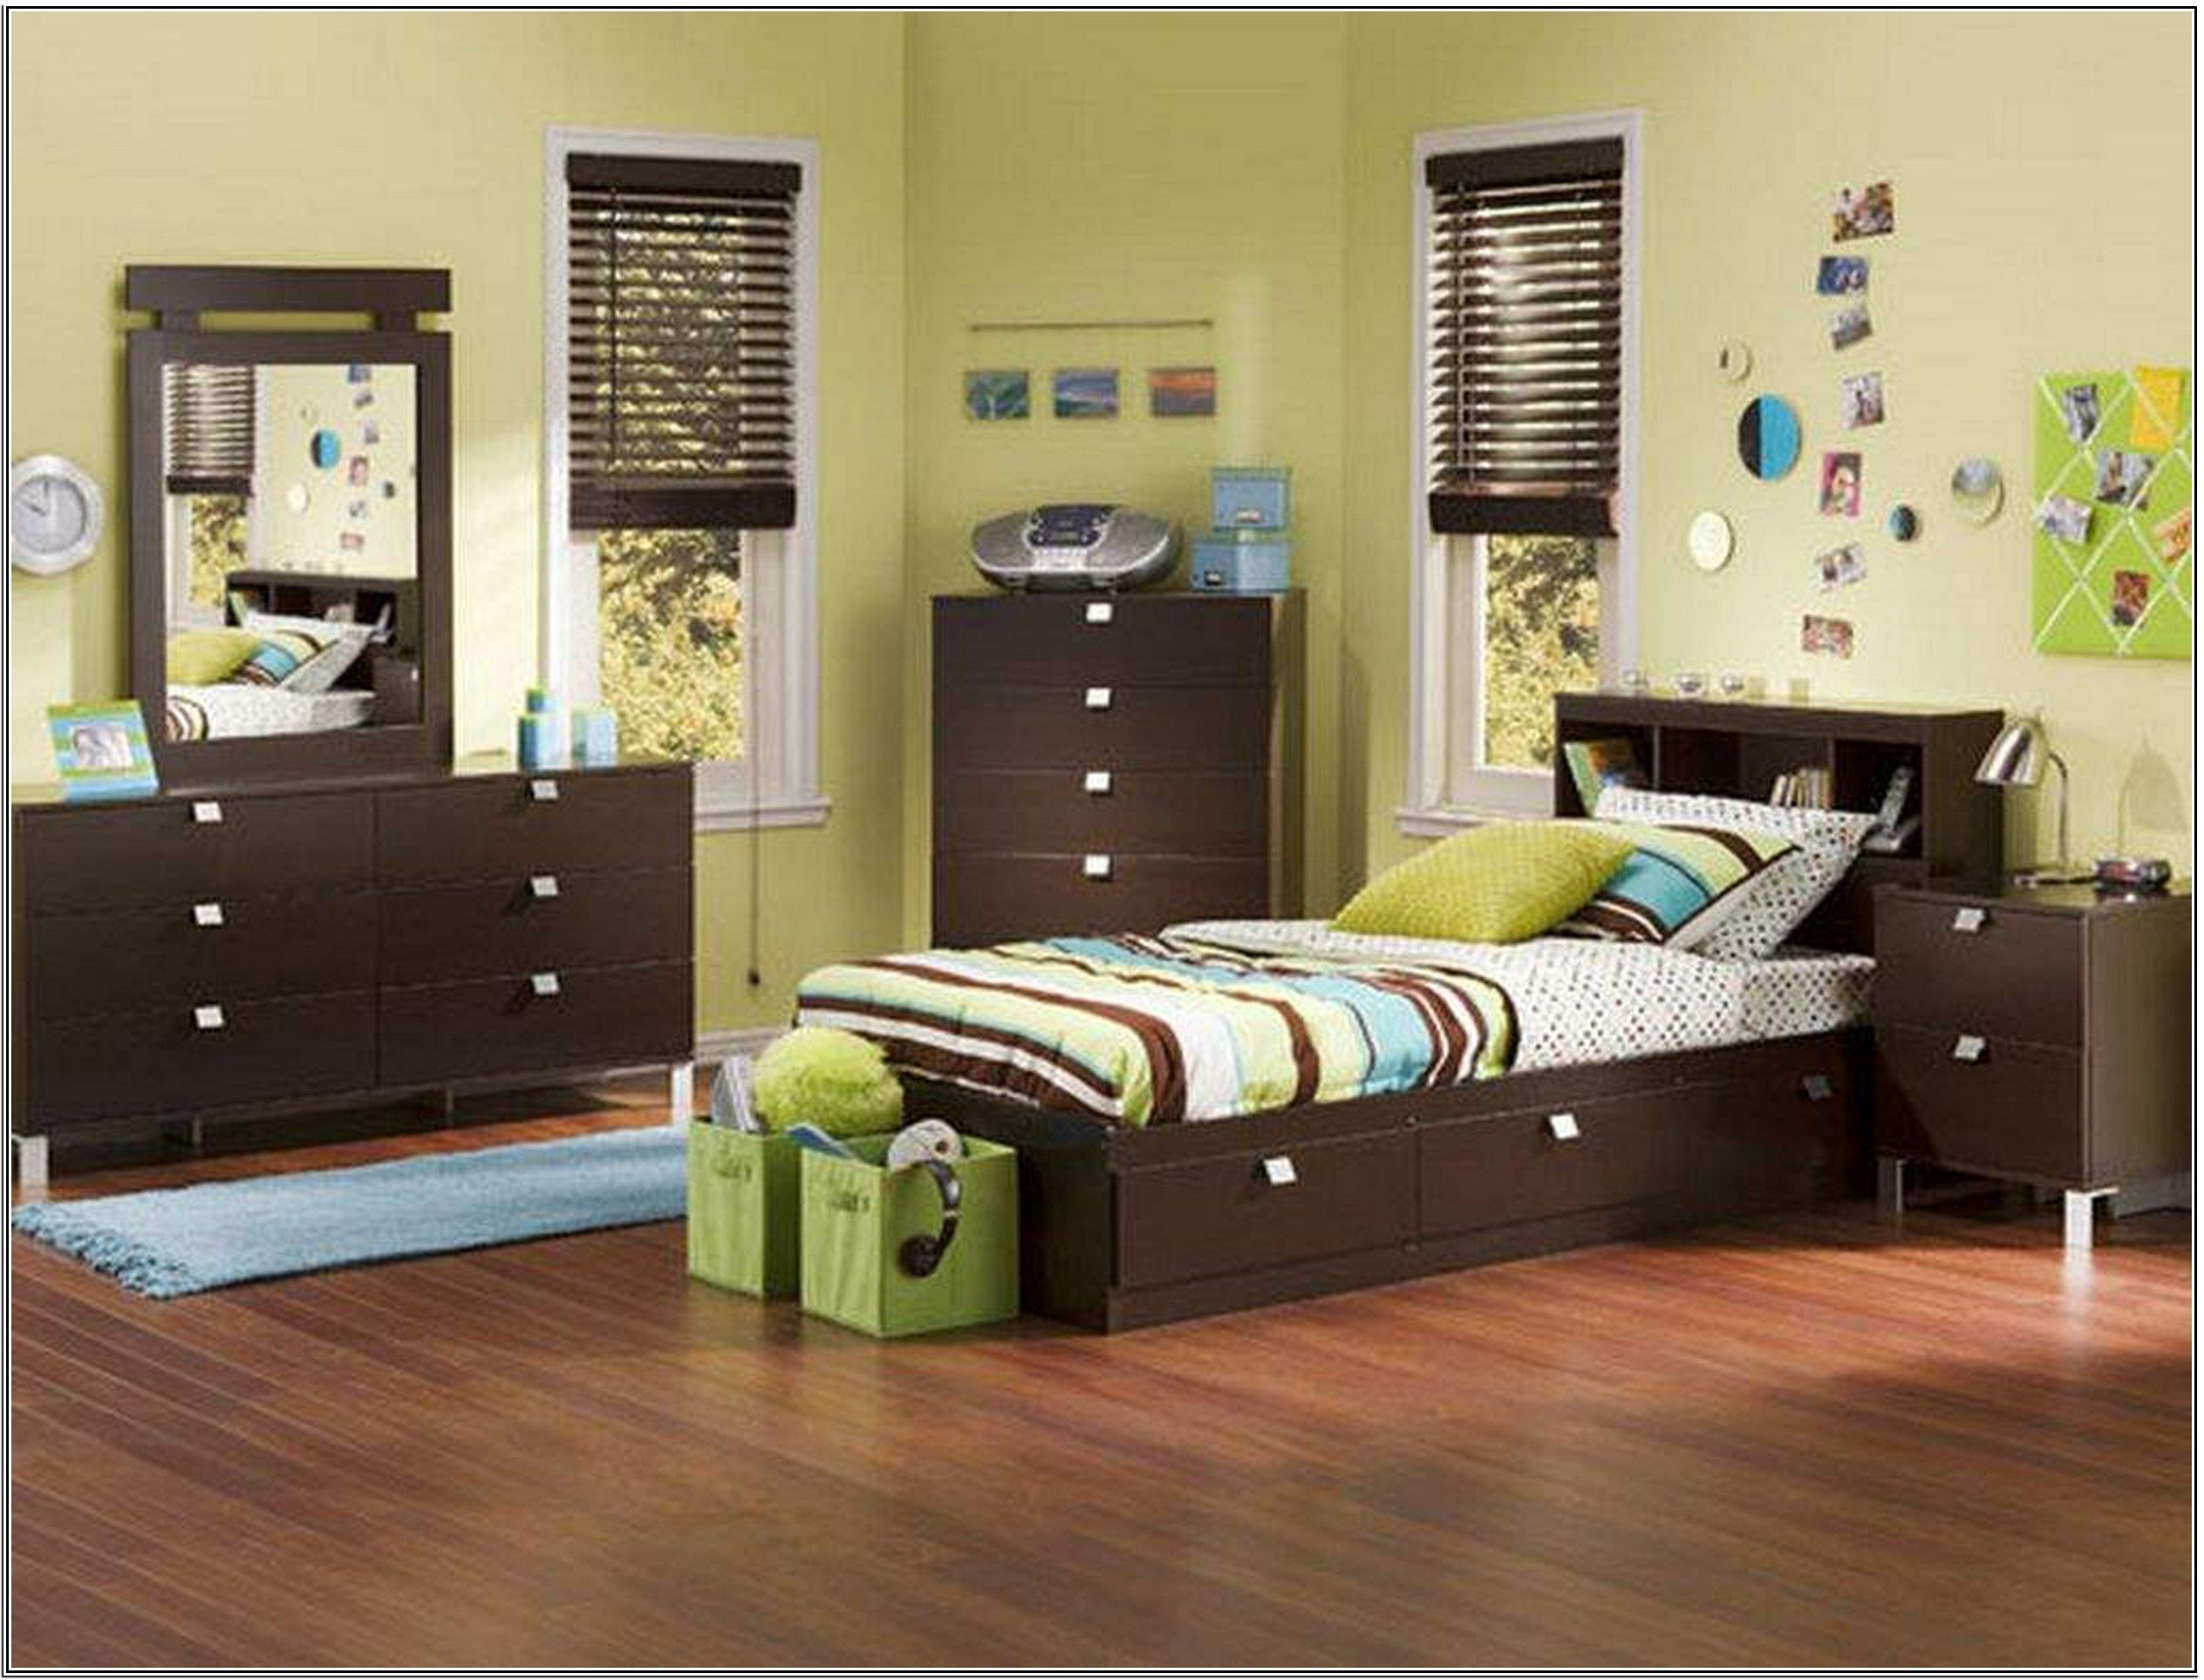 Teenage boys bedroom furniture - Teen Boys